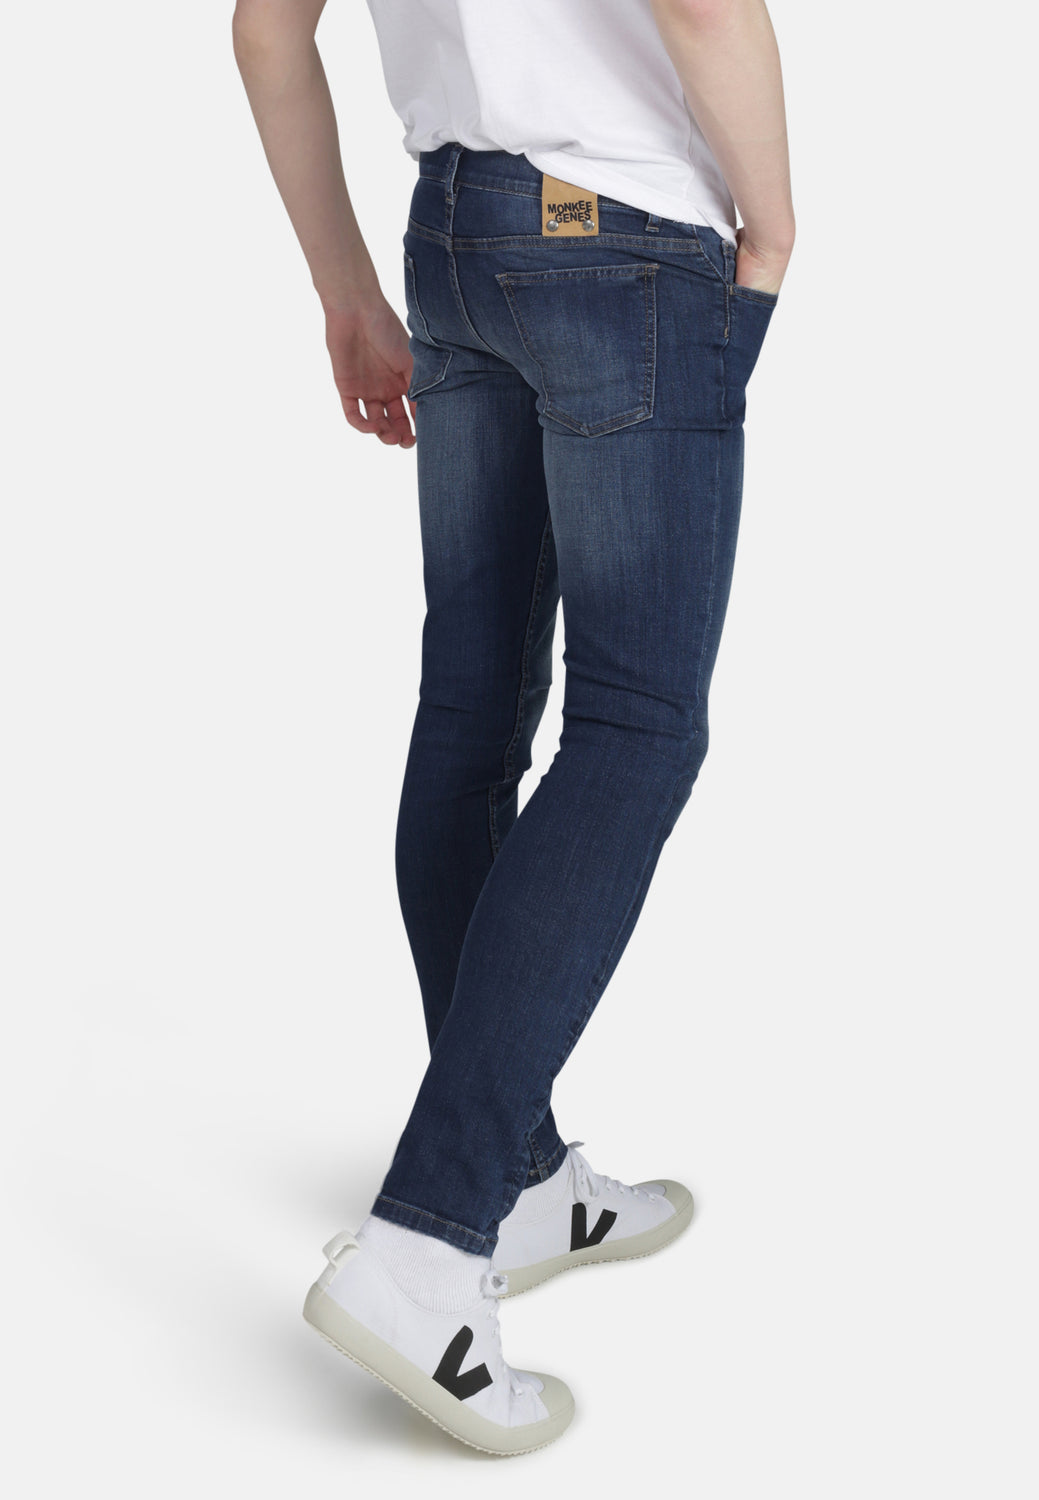 CLASSIC SKINNY // Organic Classic Skinny Jeans in Dark Wash - Monkee Genes Organic Jeans Denim - Men's Classic Skinny Monkee Genes Official  Monkee Genes Official